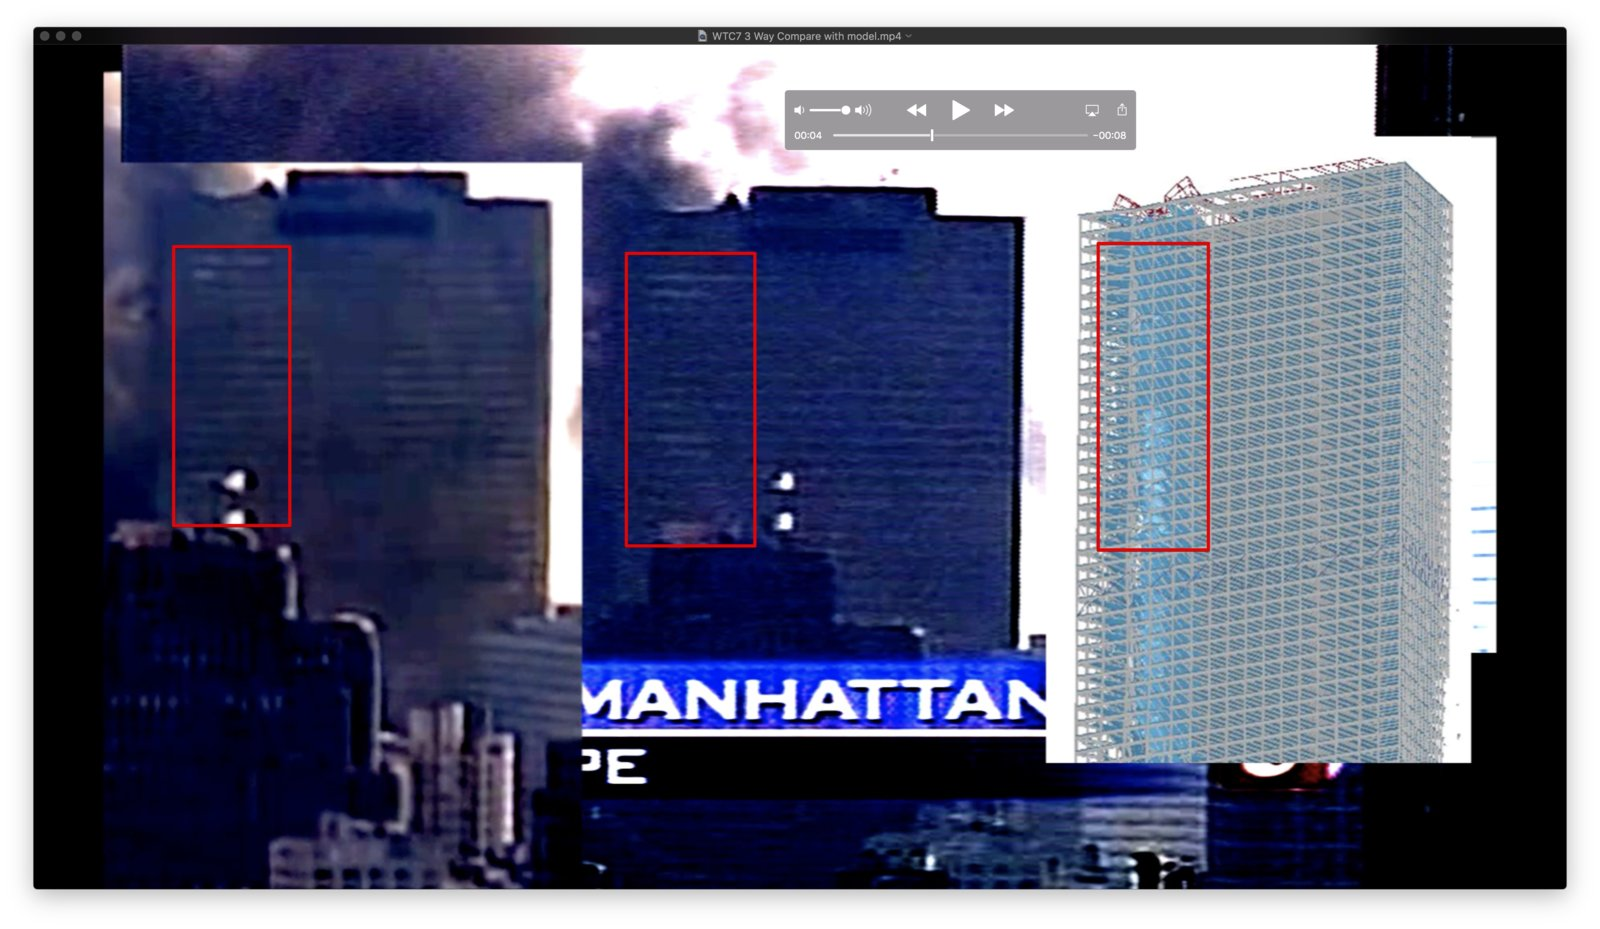 WTC7 3 Way Compare with model.mp4 2018-01-11 13-13-30.